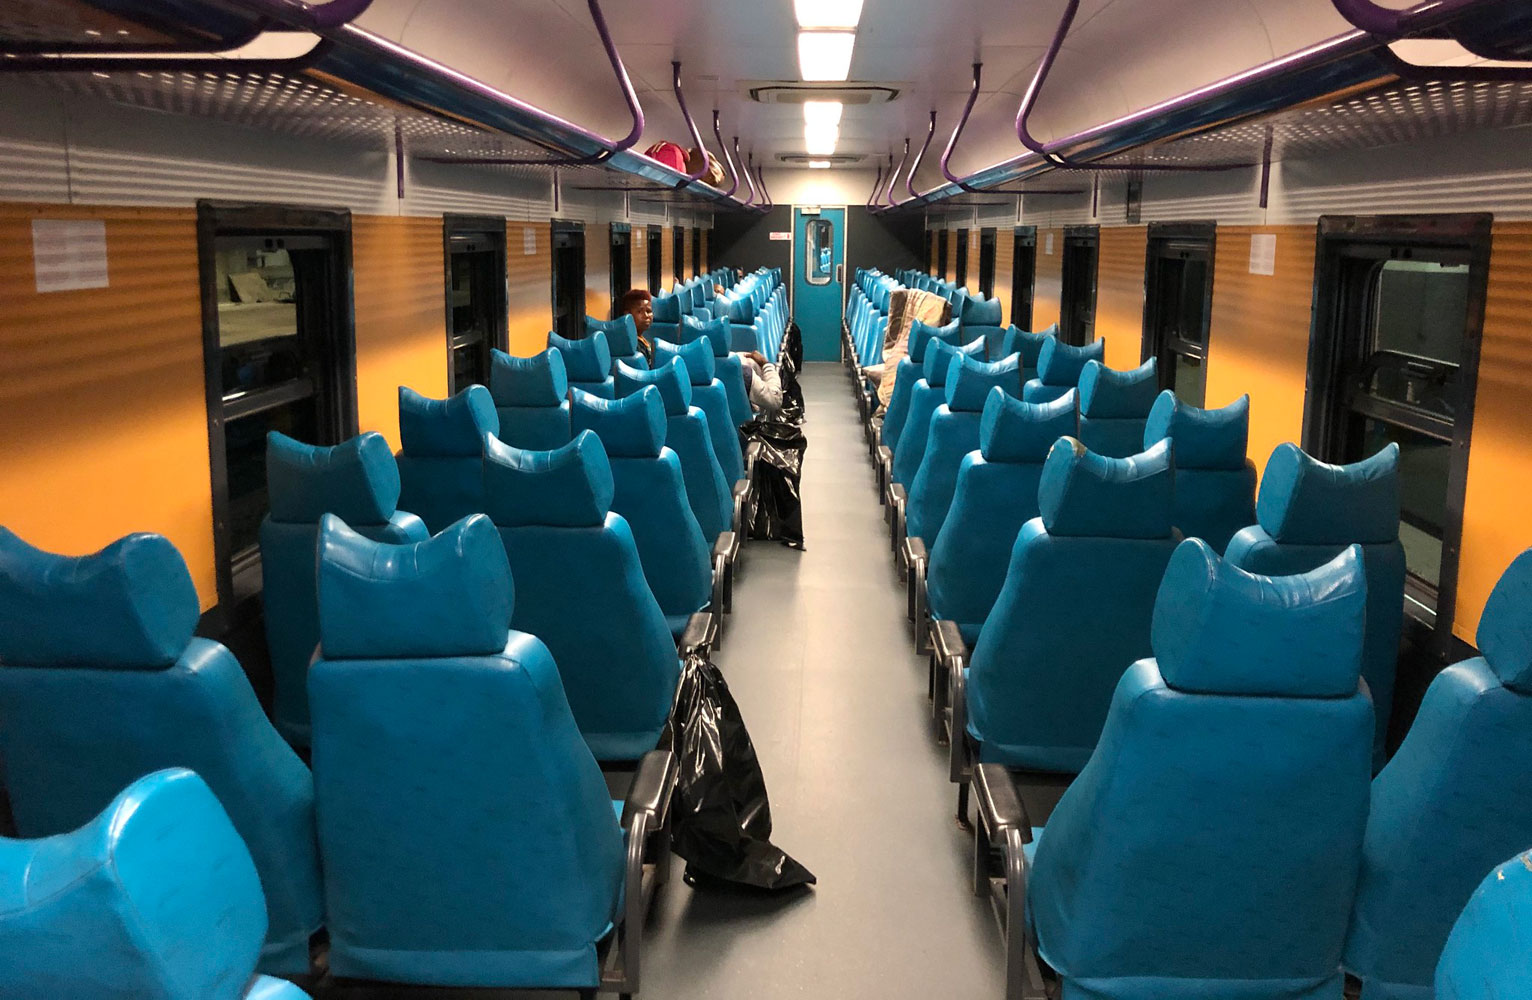 Train Travel In South Africa Cape Town Johannesburg From R630 36 62 With Sleeper